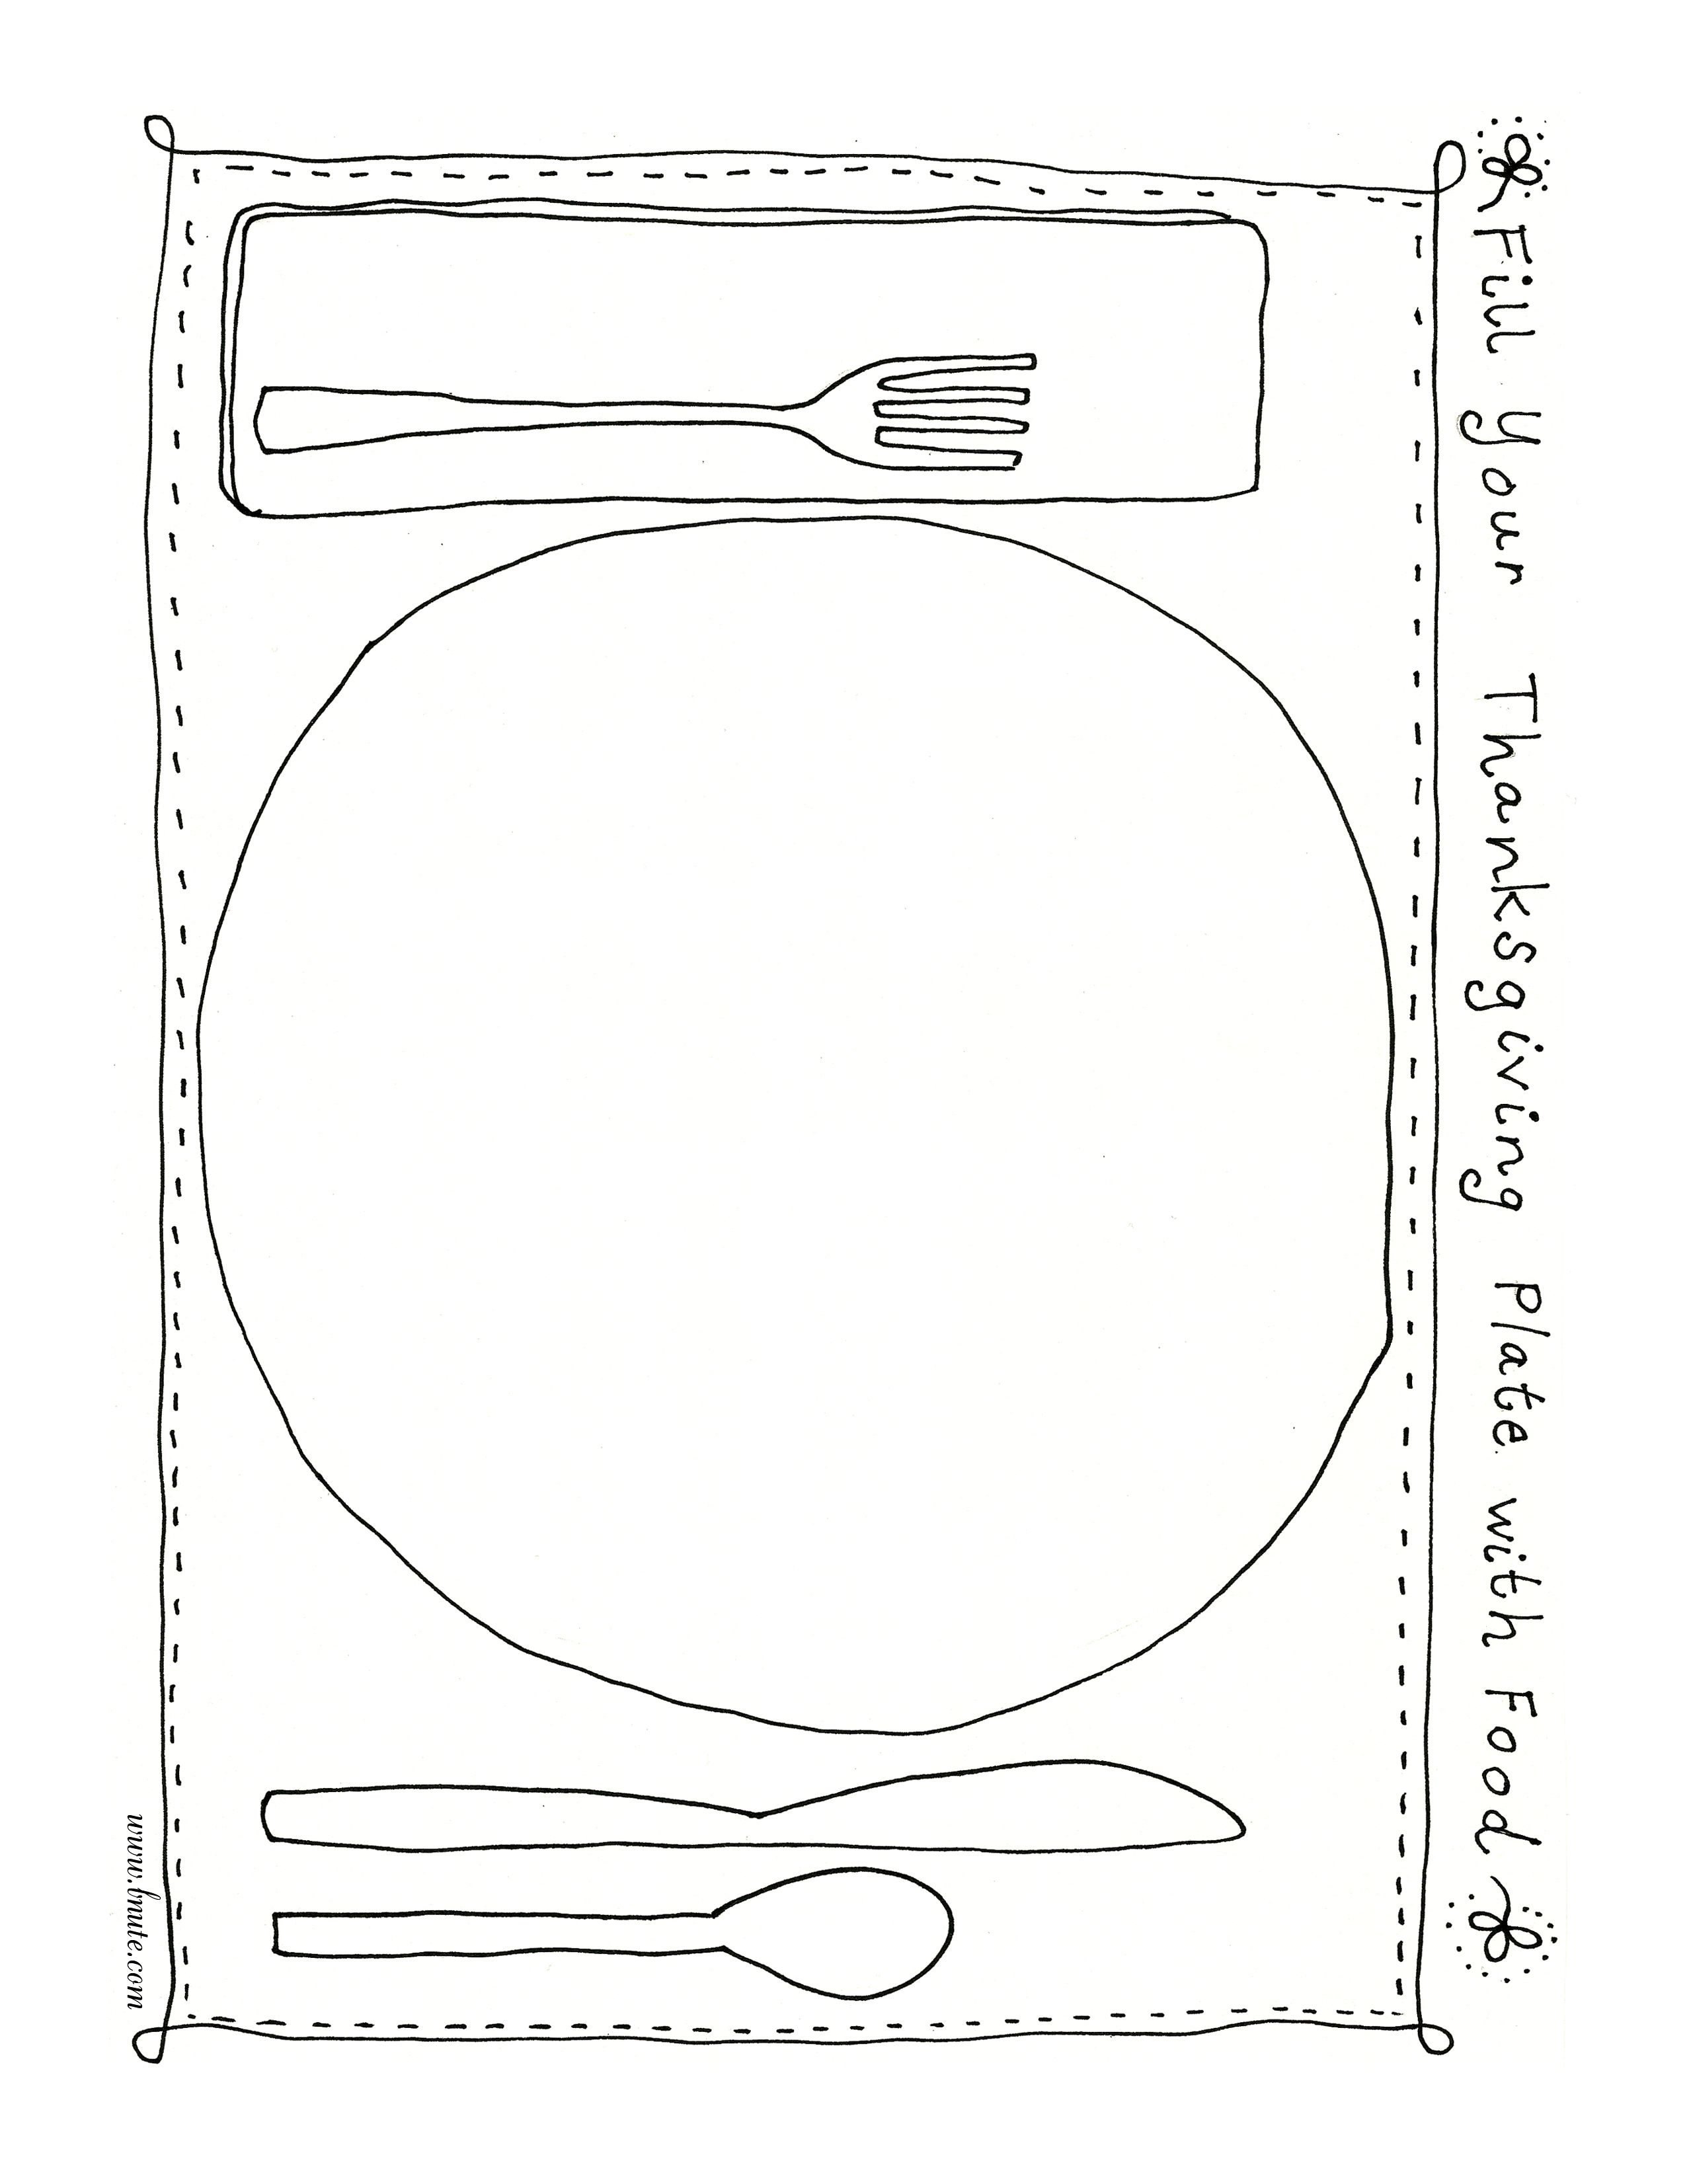 My Plate Coloring Pages For Preschool